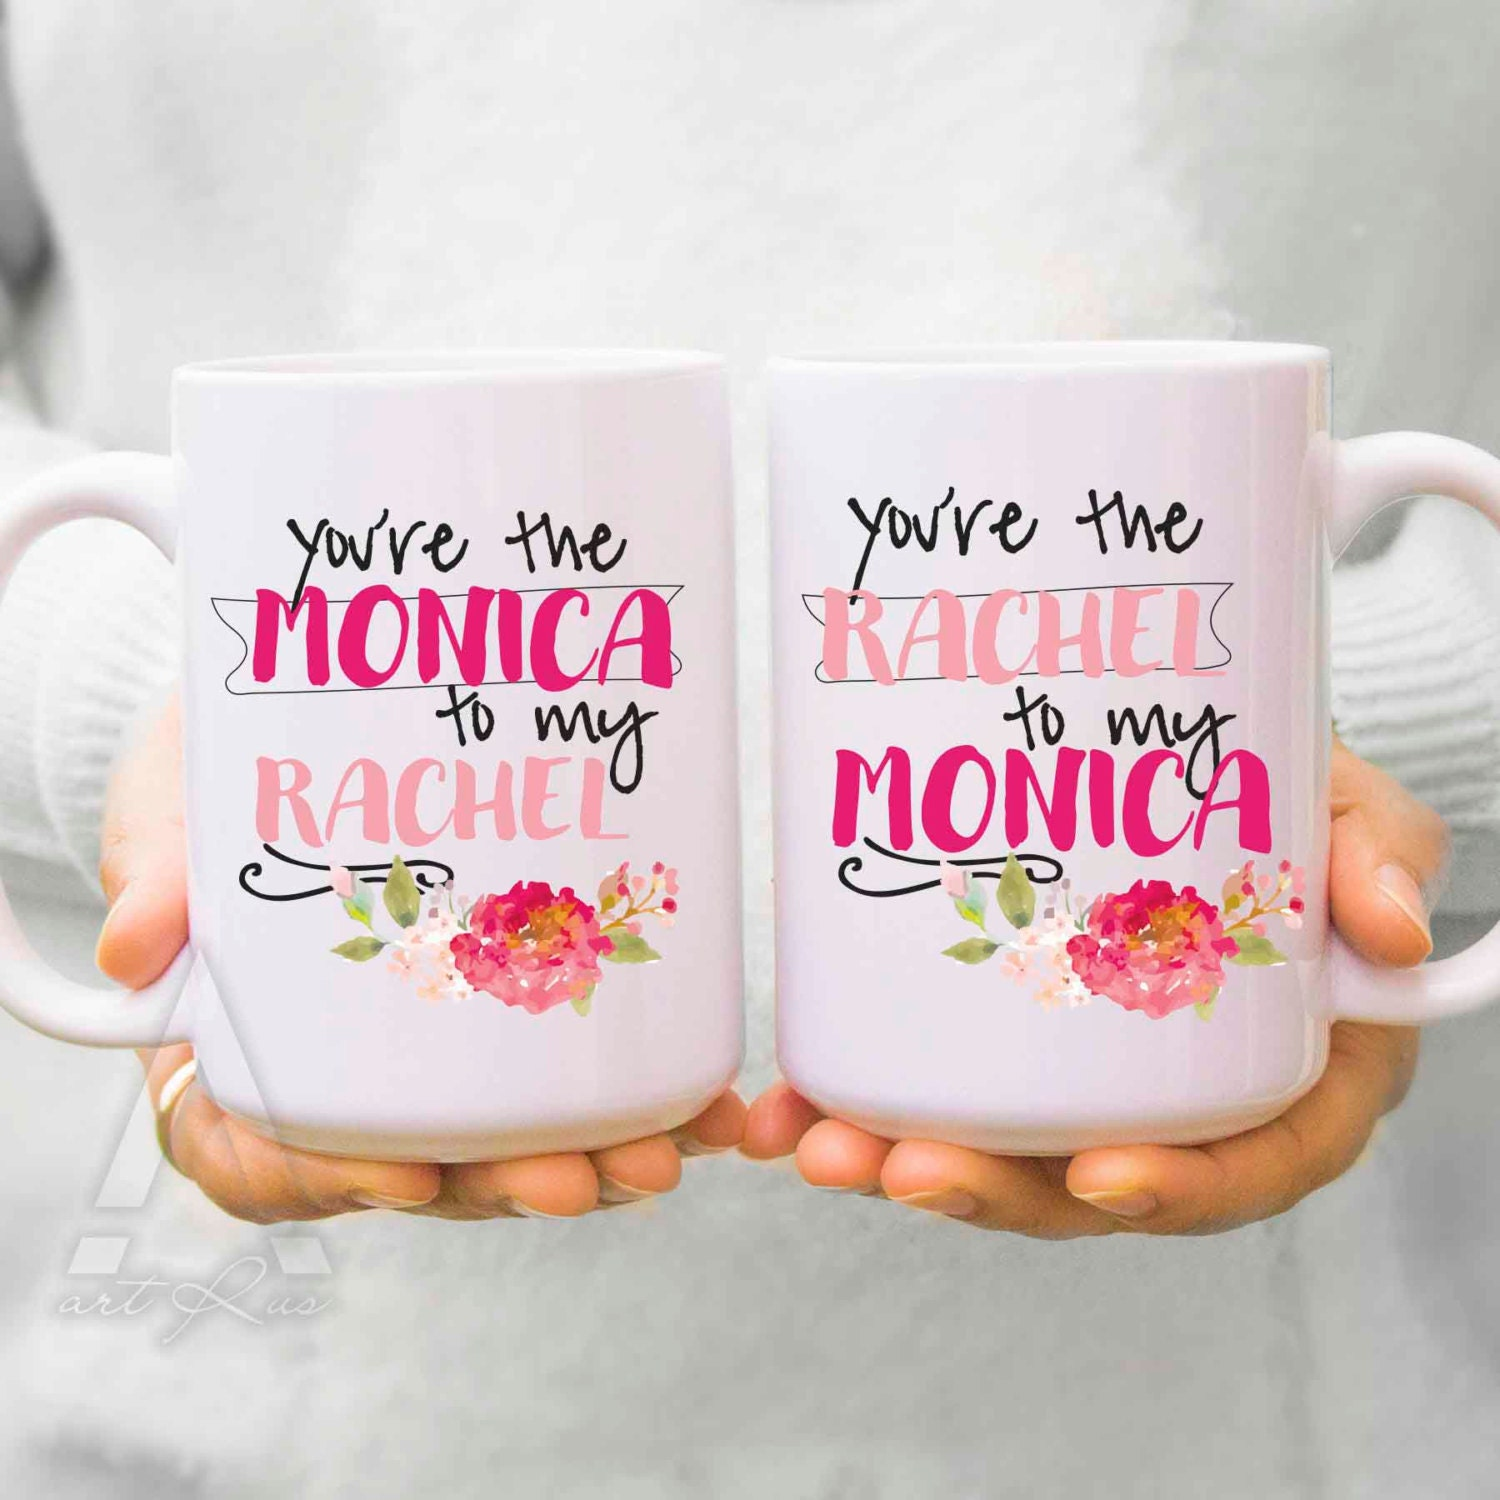 Best Friend Mugs Christmas Gifts You Are The Monica To: amazing christmas gifts for your best friend